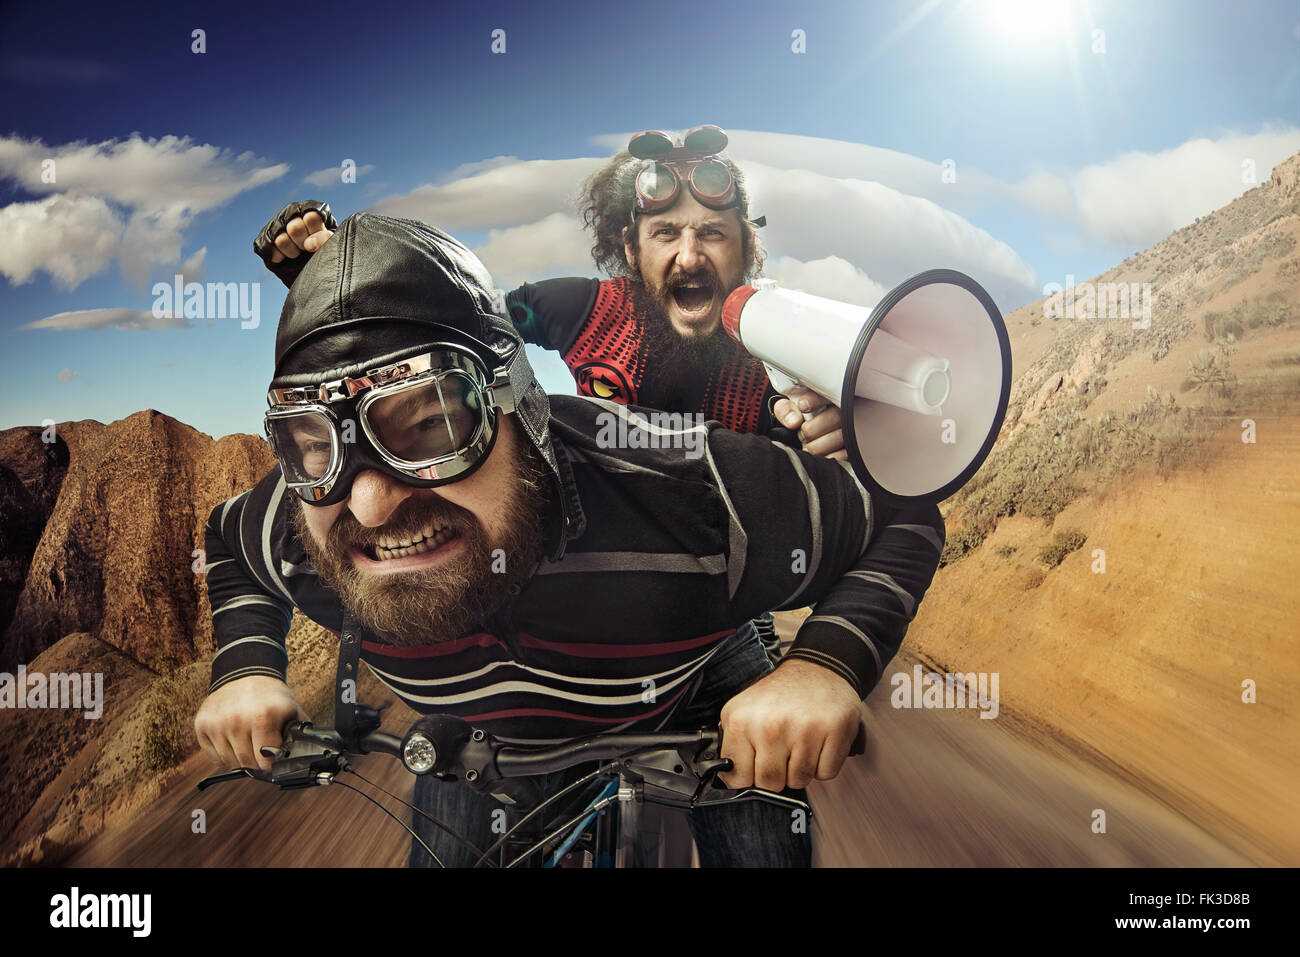 Funny portrait of a tandem of bicyclists - Stock Image